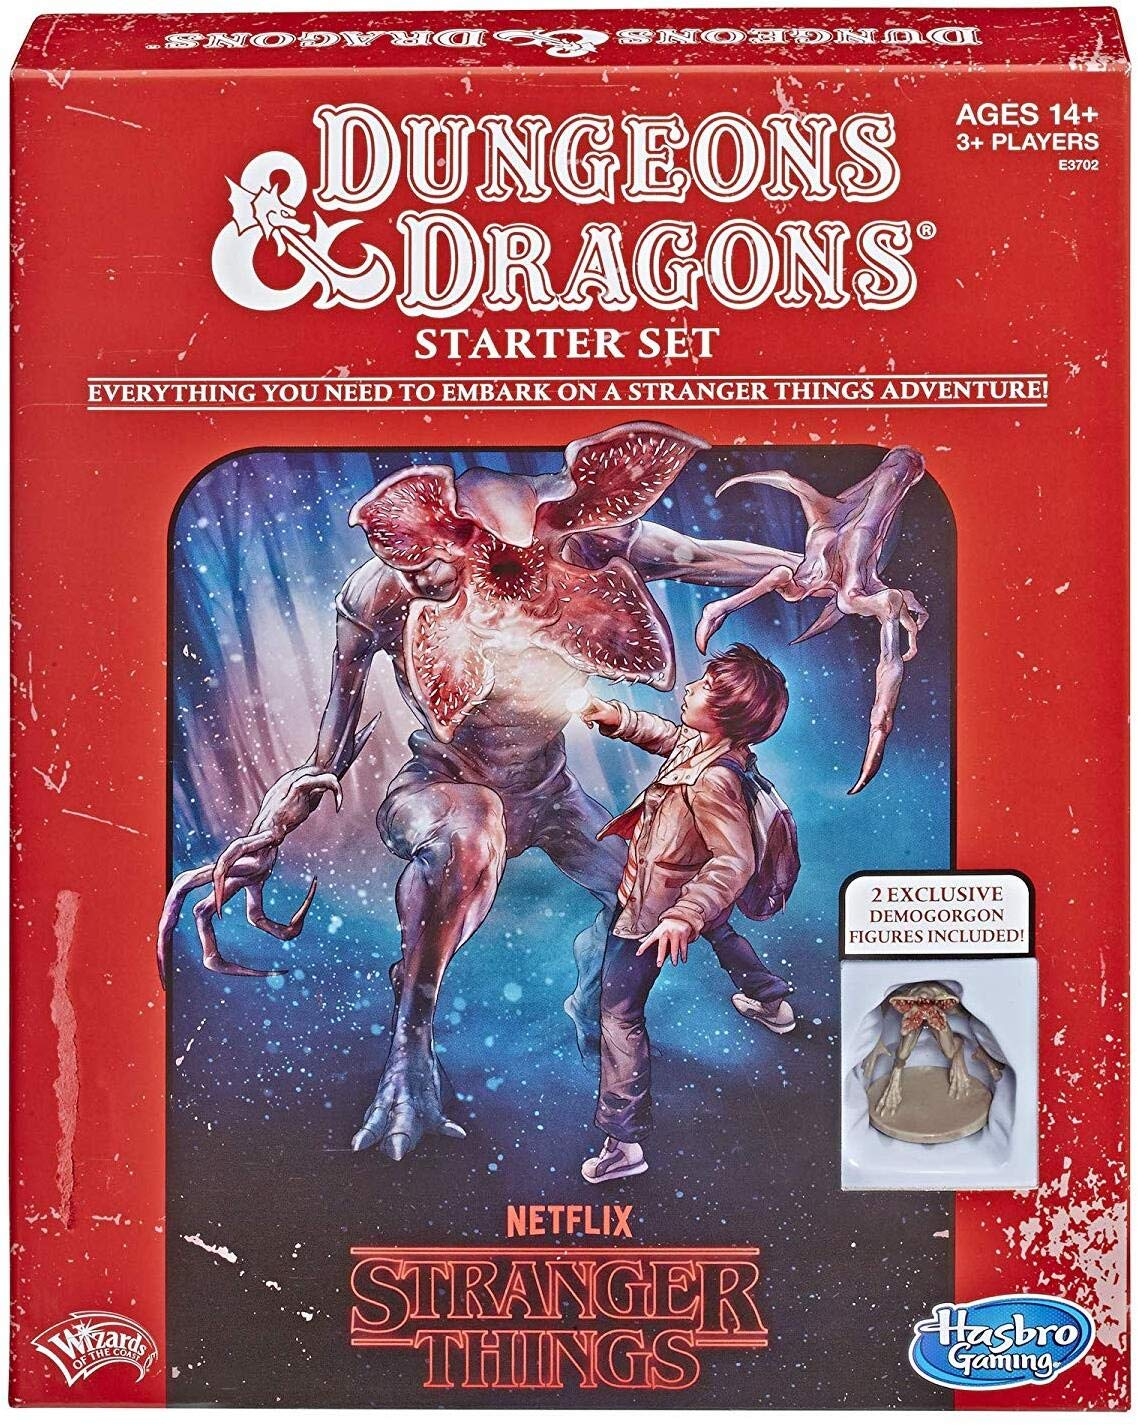 Stranger Things- Dungeons & Dragons: Amazon.es: Hasbro: Libros en idiomas extranjeros